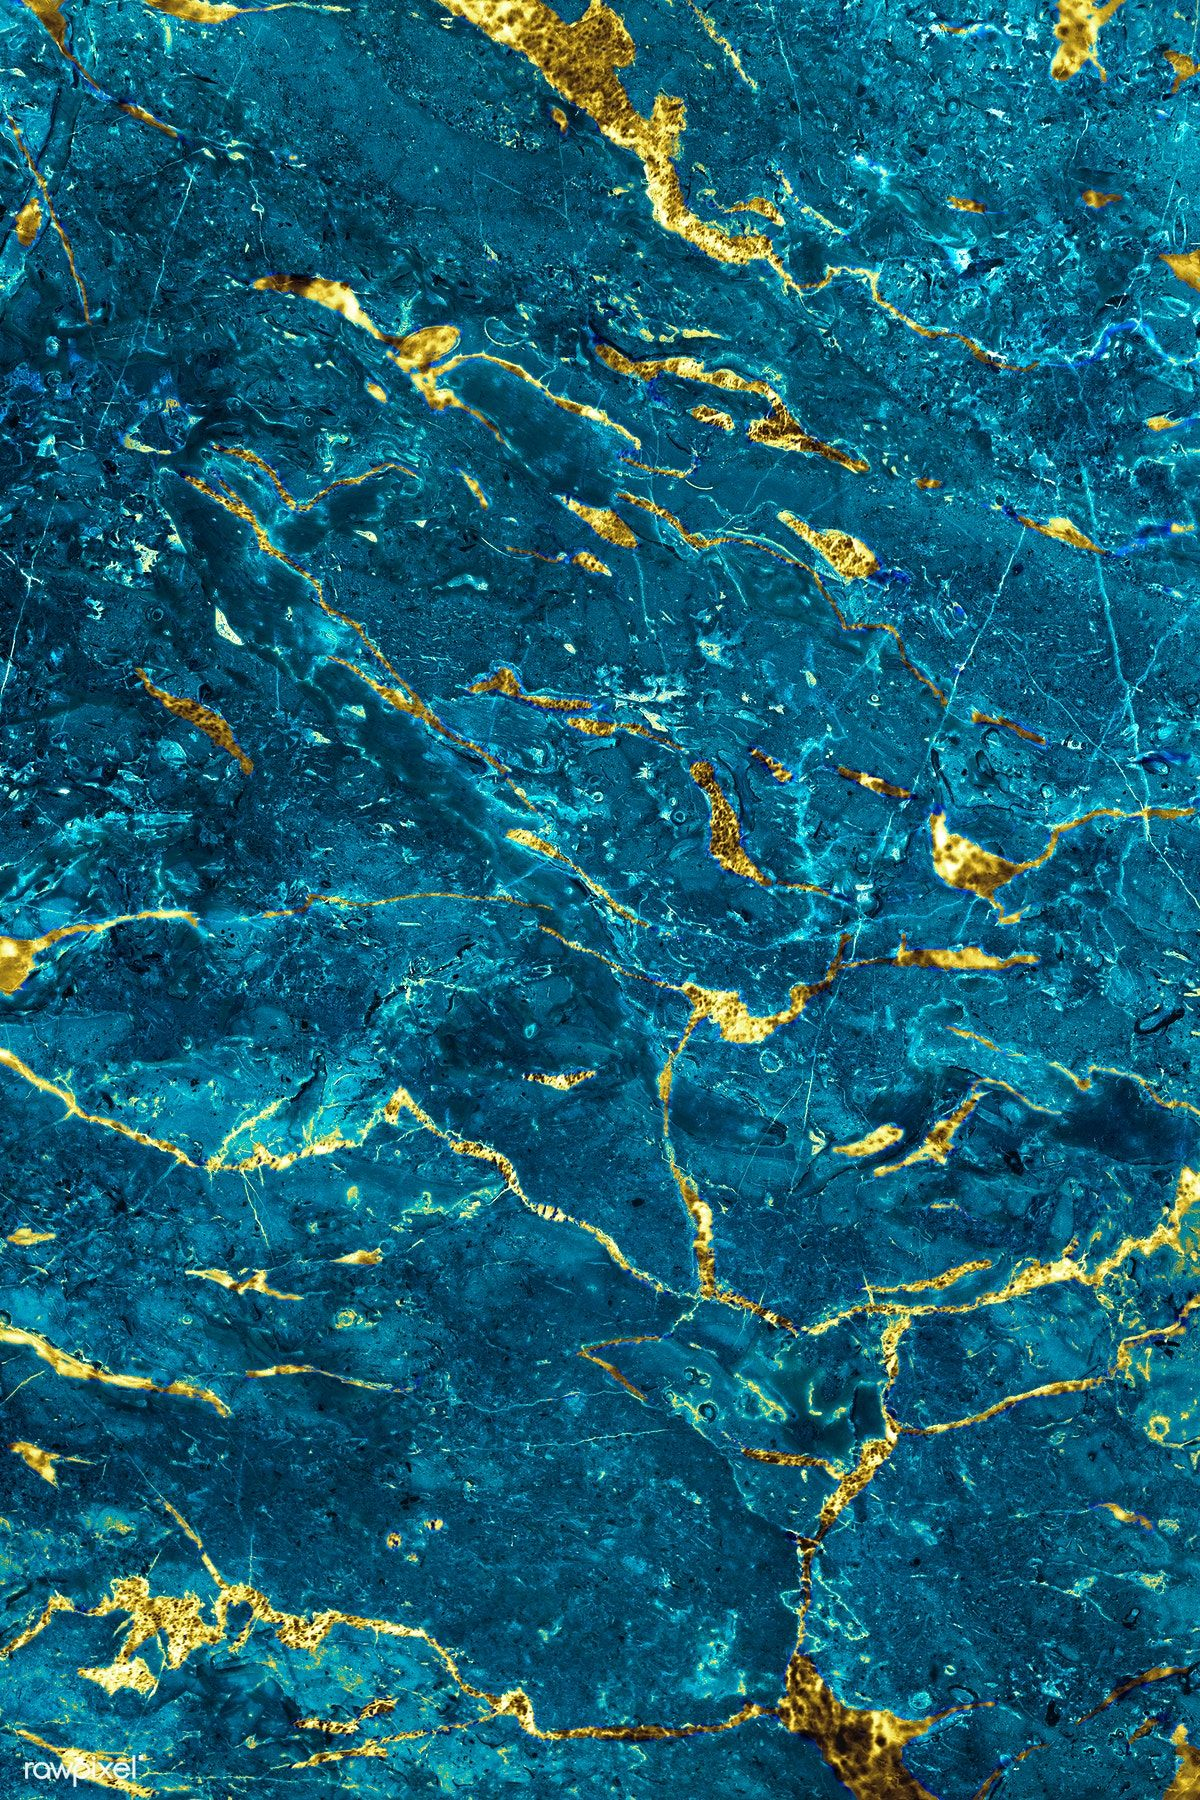 Blue And Gold Marble Textured Background Free Image By Rawpixel Com In 2020 Textured Background Marble Texture Blue Marble Wallpaper